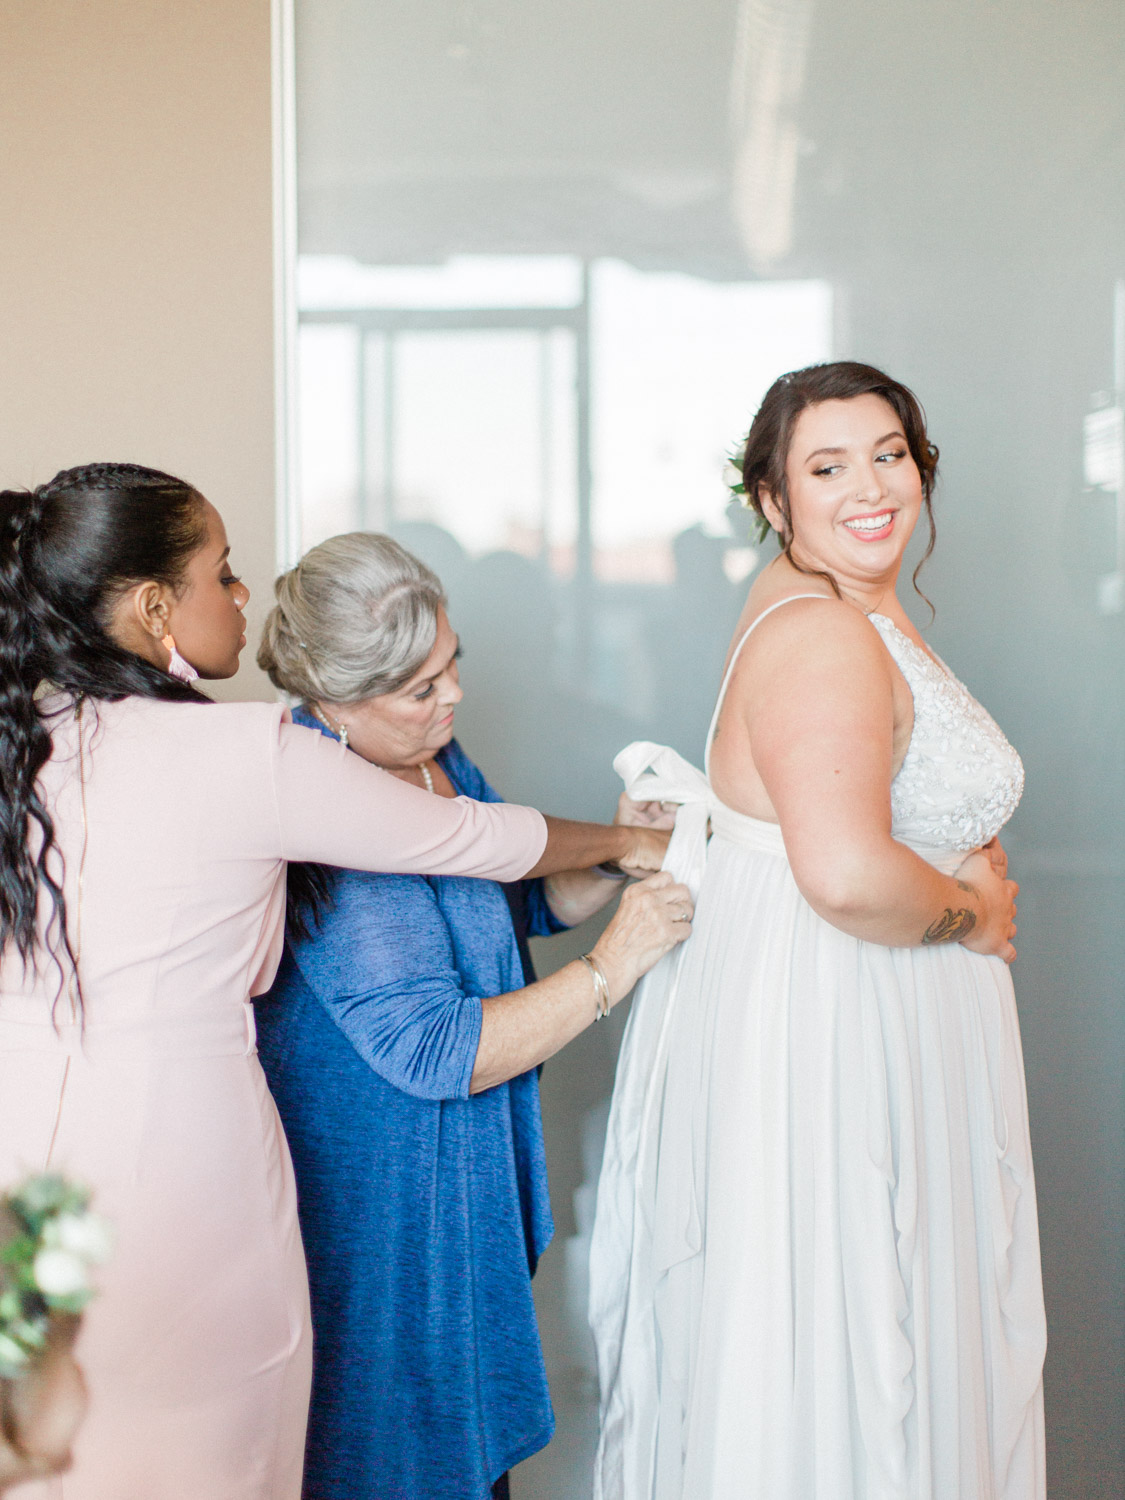 A contemporary wedding photograph in downtown Toronto at the Henley Room, Argonauts Rowing Club